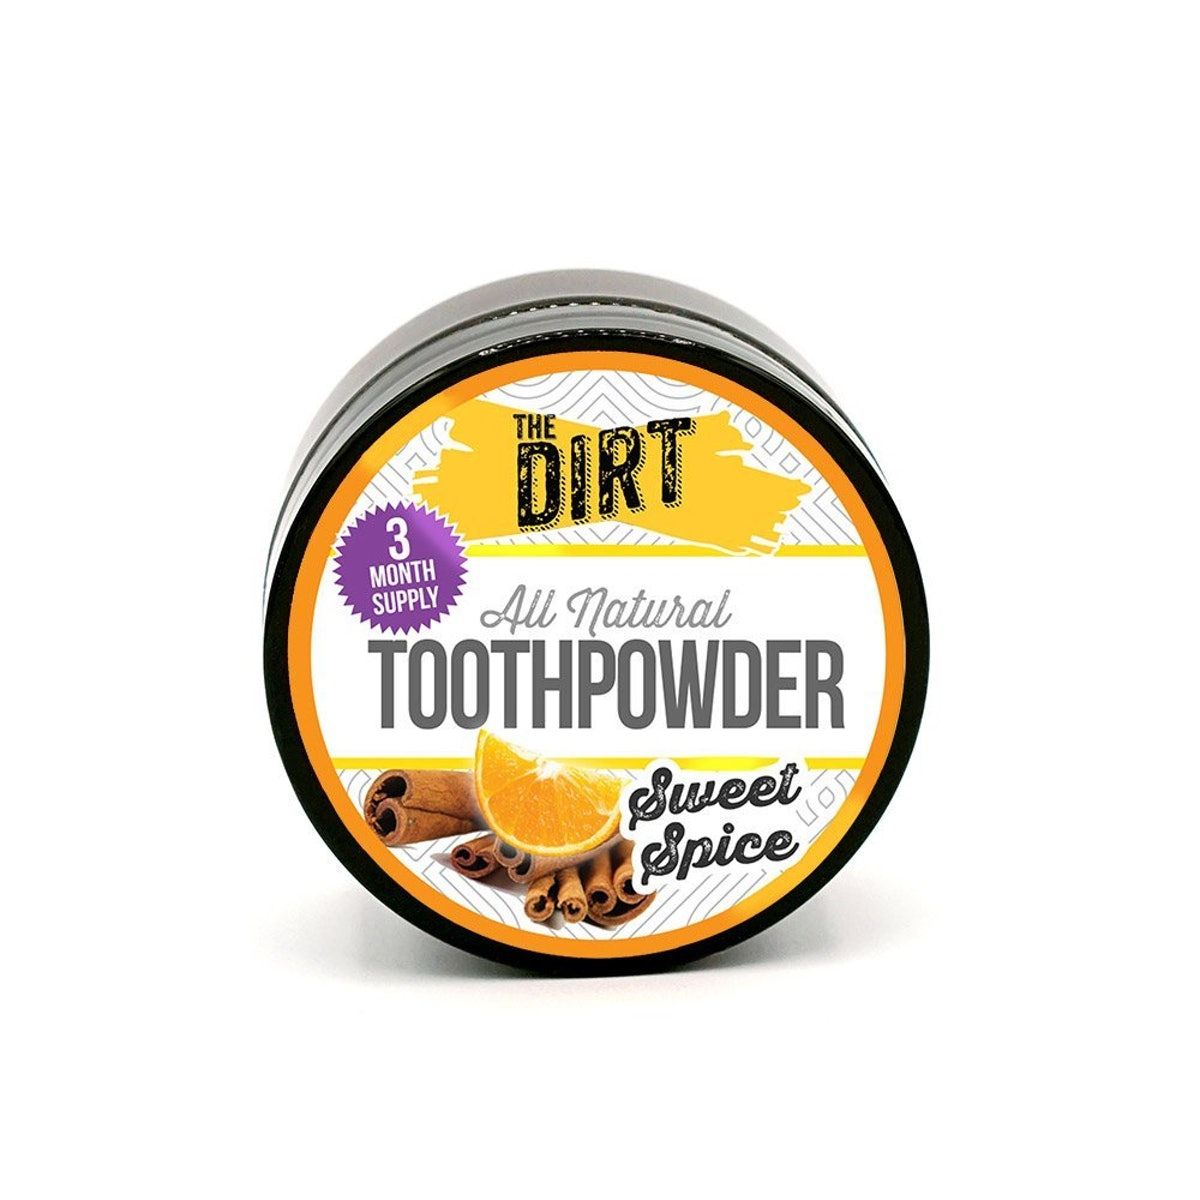 The Dirt Tooth Powder